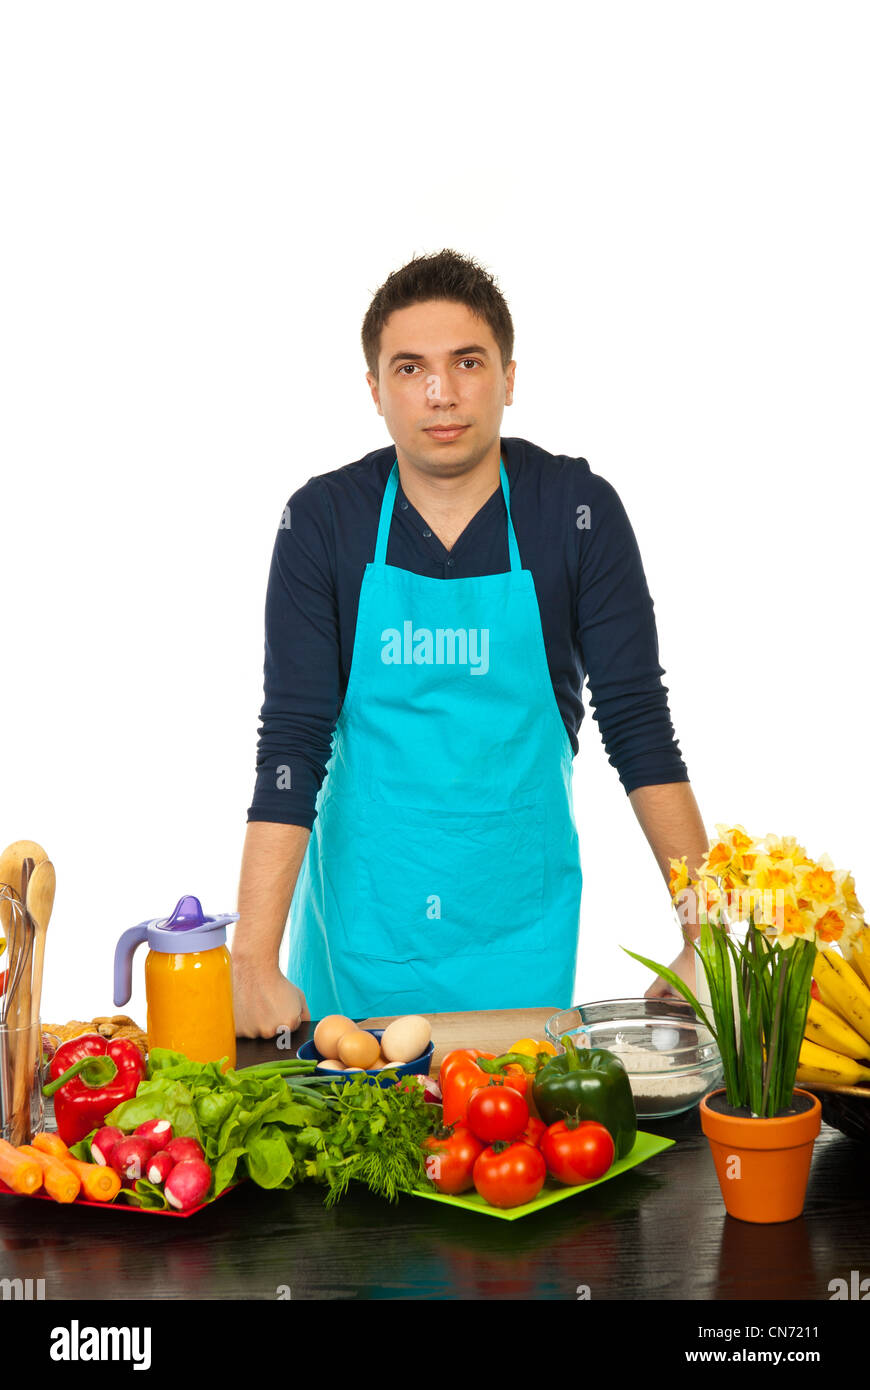 Male Chef Fruits Vegetables In Stock Photos & Male Chef Fruits ...